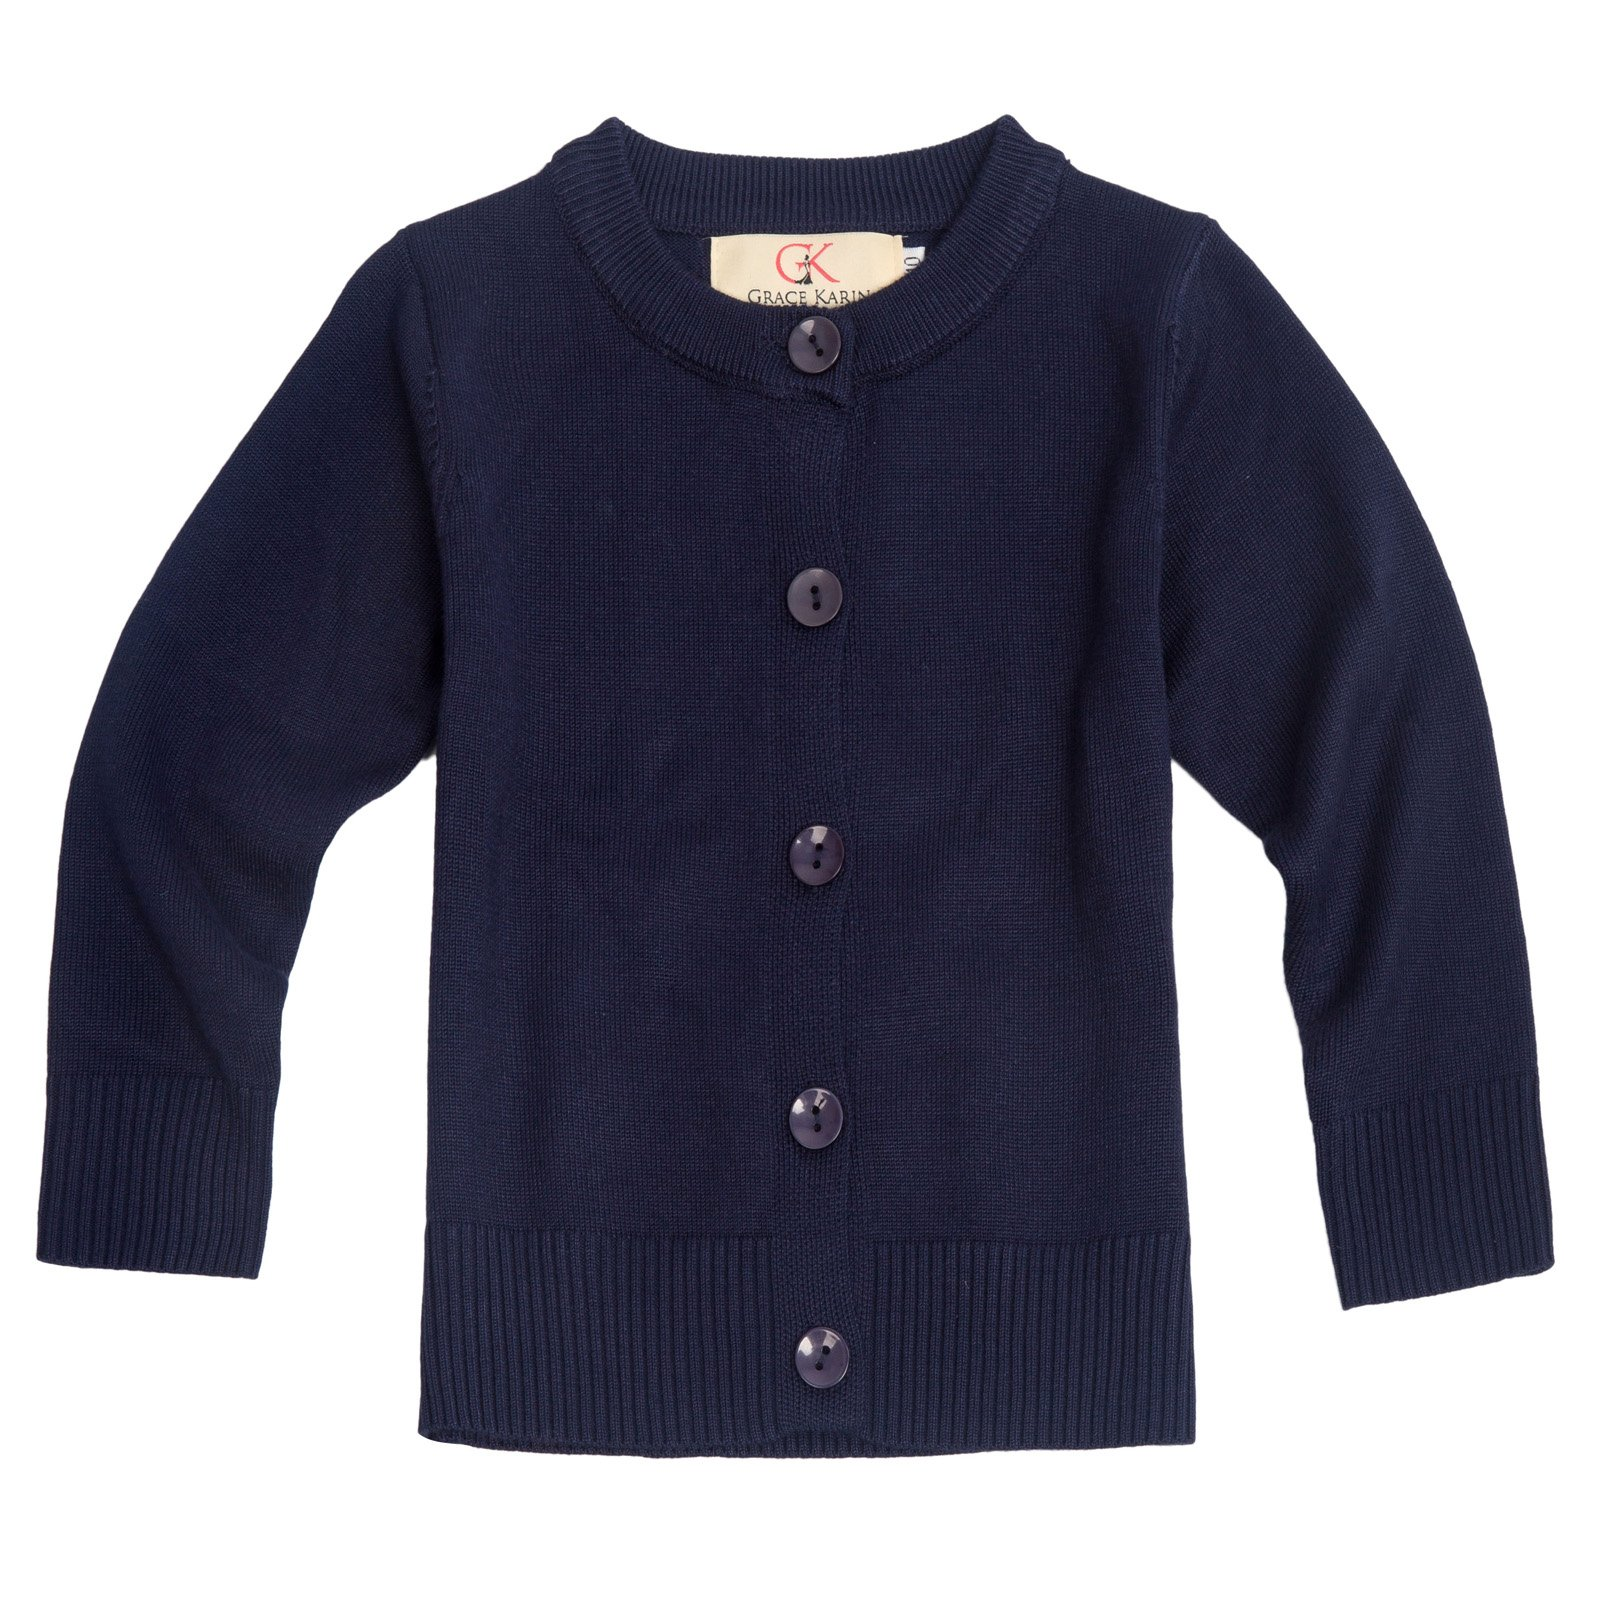 Girls Knit Jacket Long Sleeve Solid Color Cardigan Sweater 8-9yrs AM2004-2